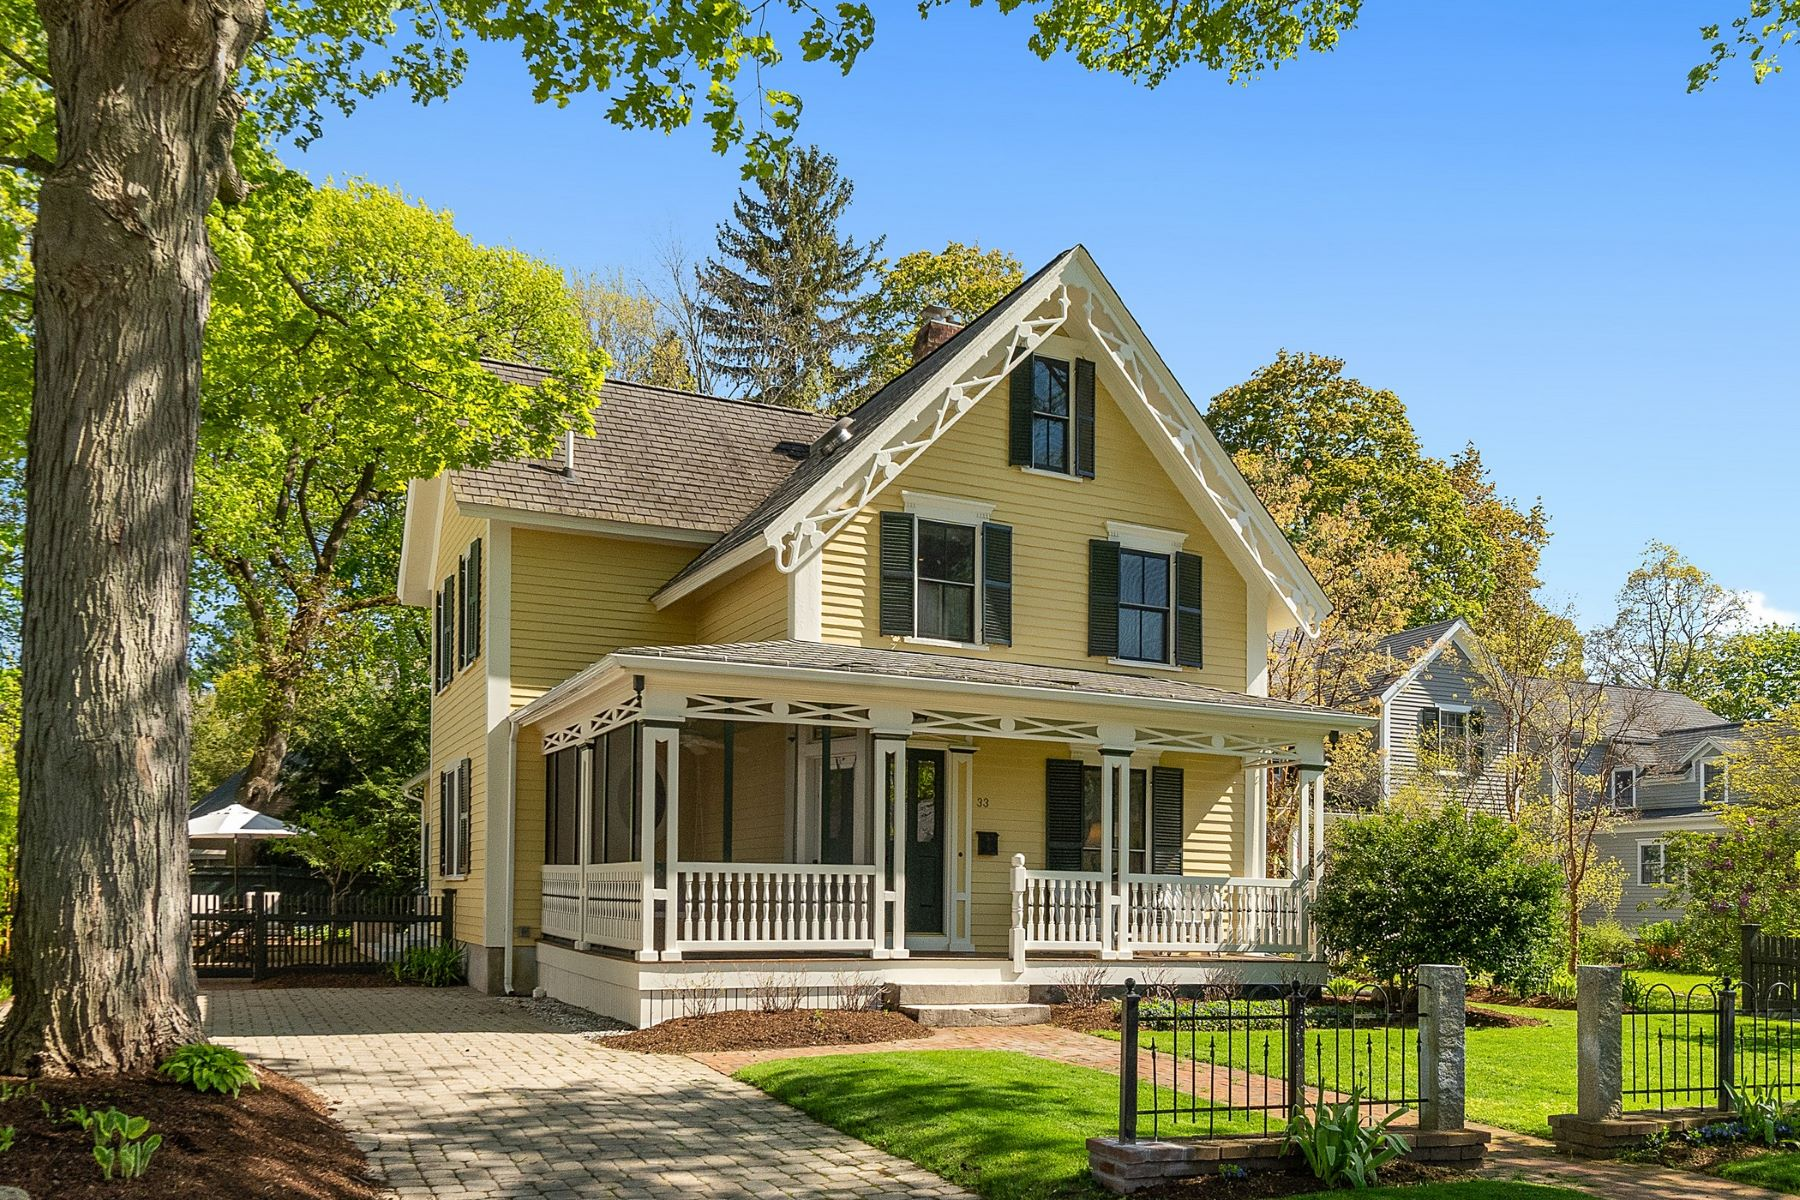 Single Family Homes for Sale at 33 Middle Street Concord, Massachusetts 01742 United States